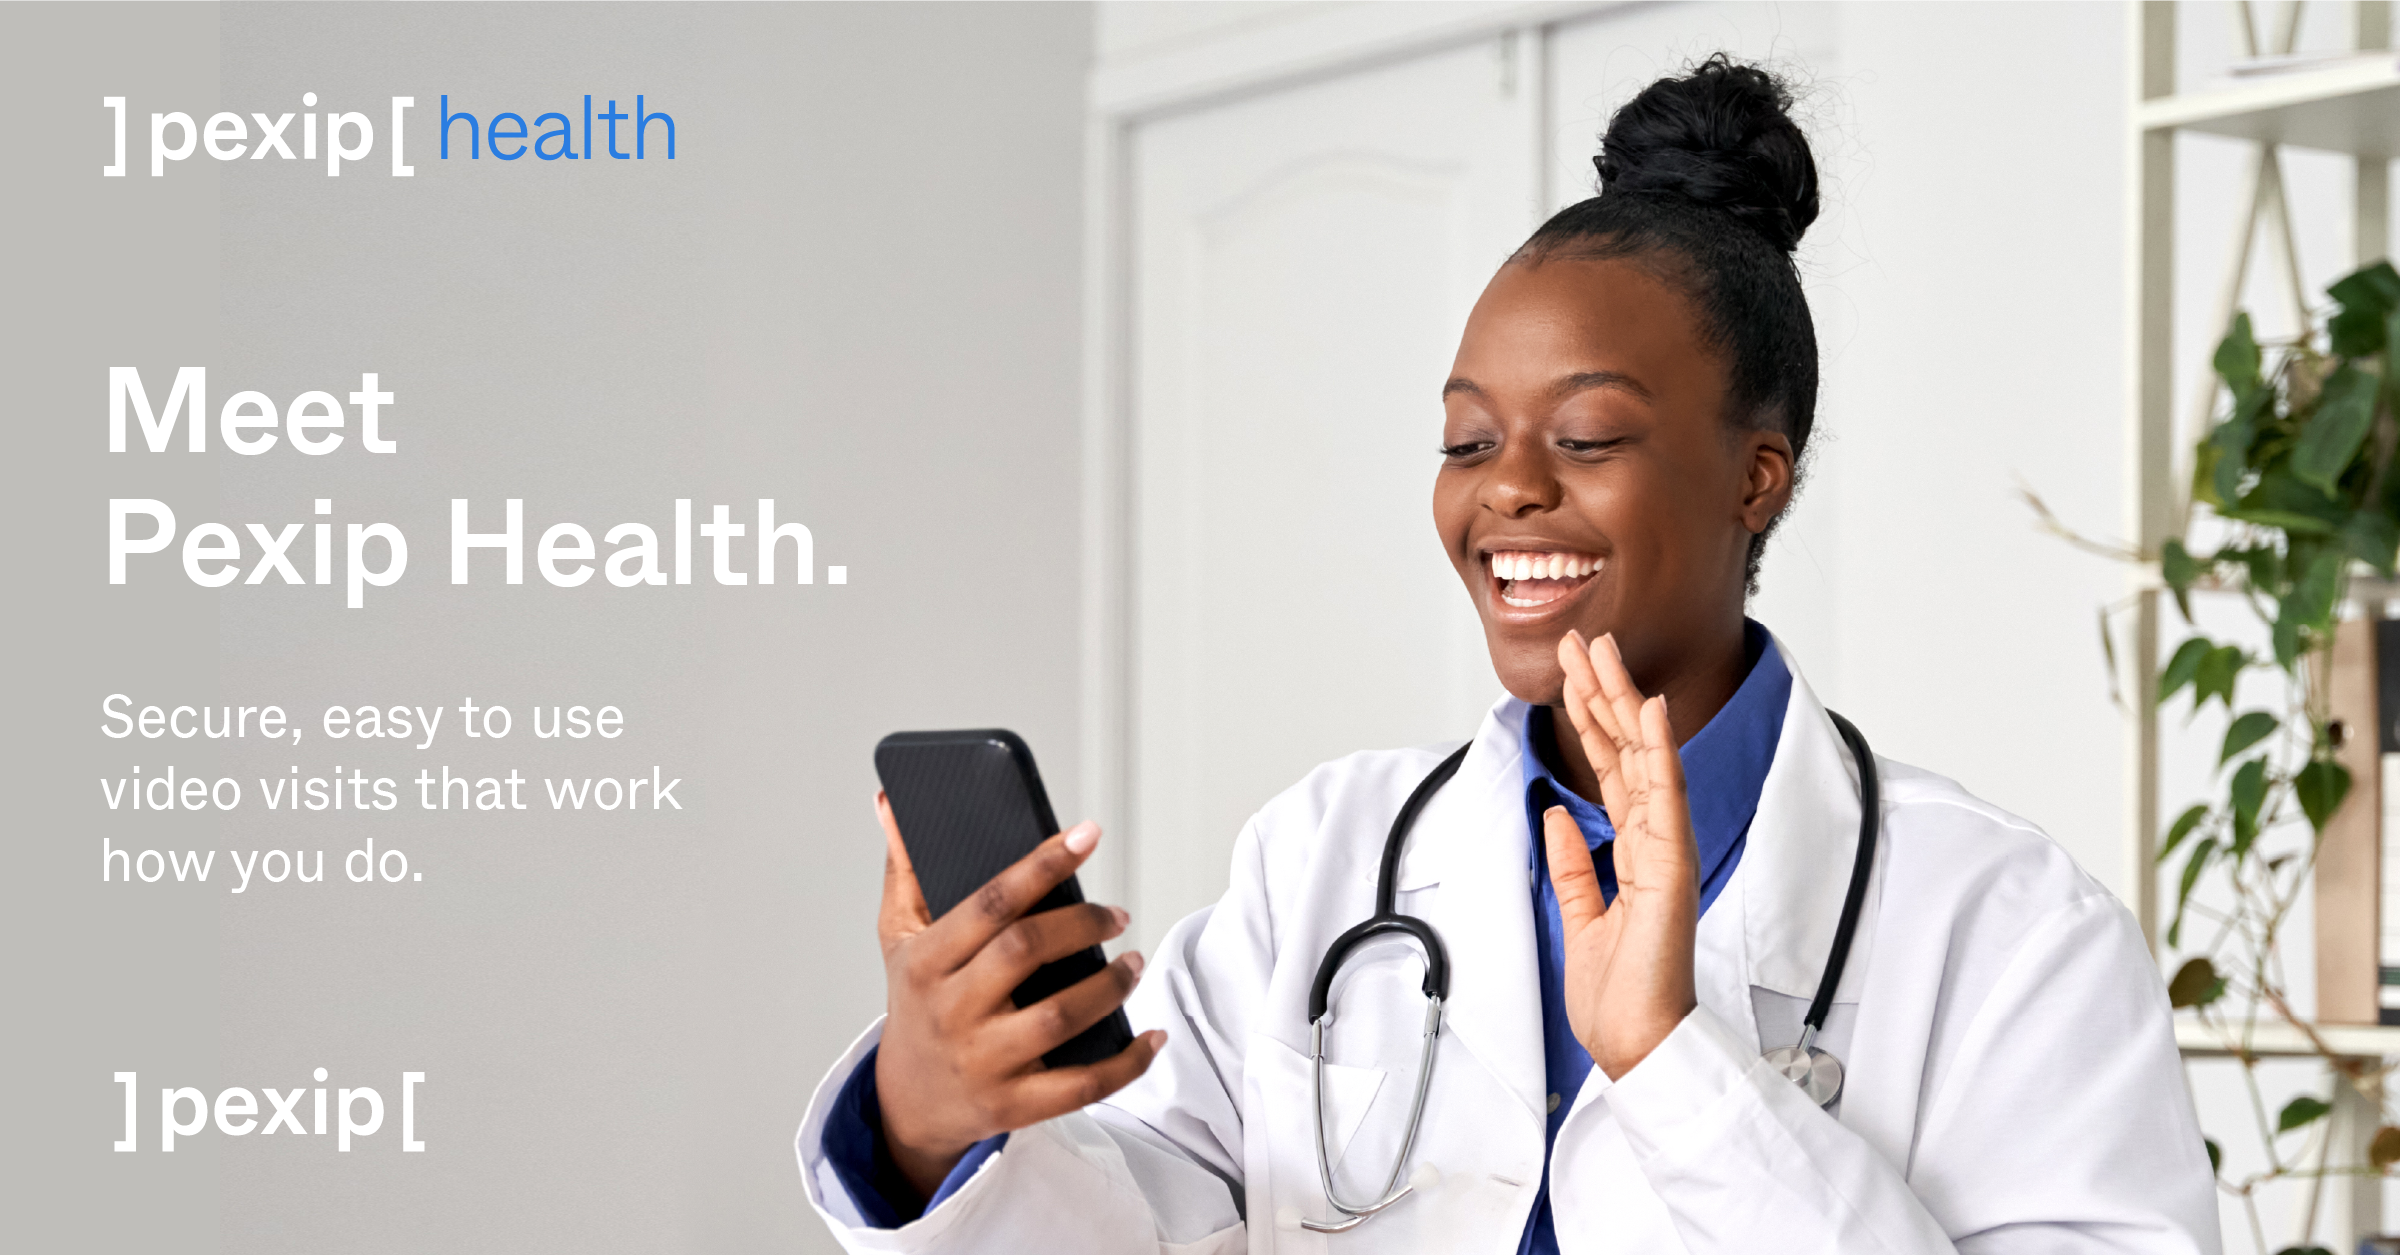 Pexip Health enables simple, easy-to-join video visits for telehealth